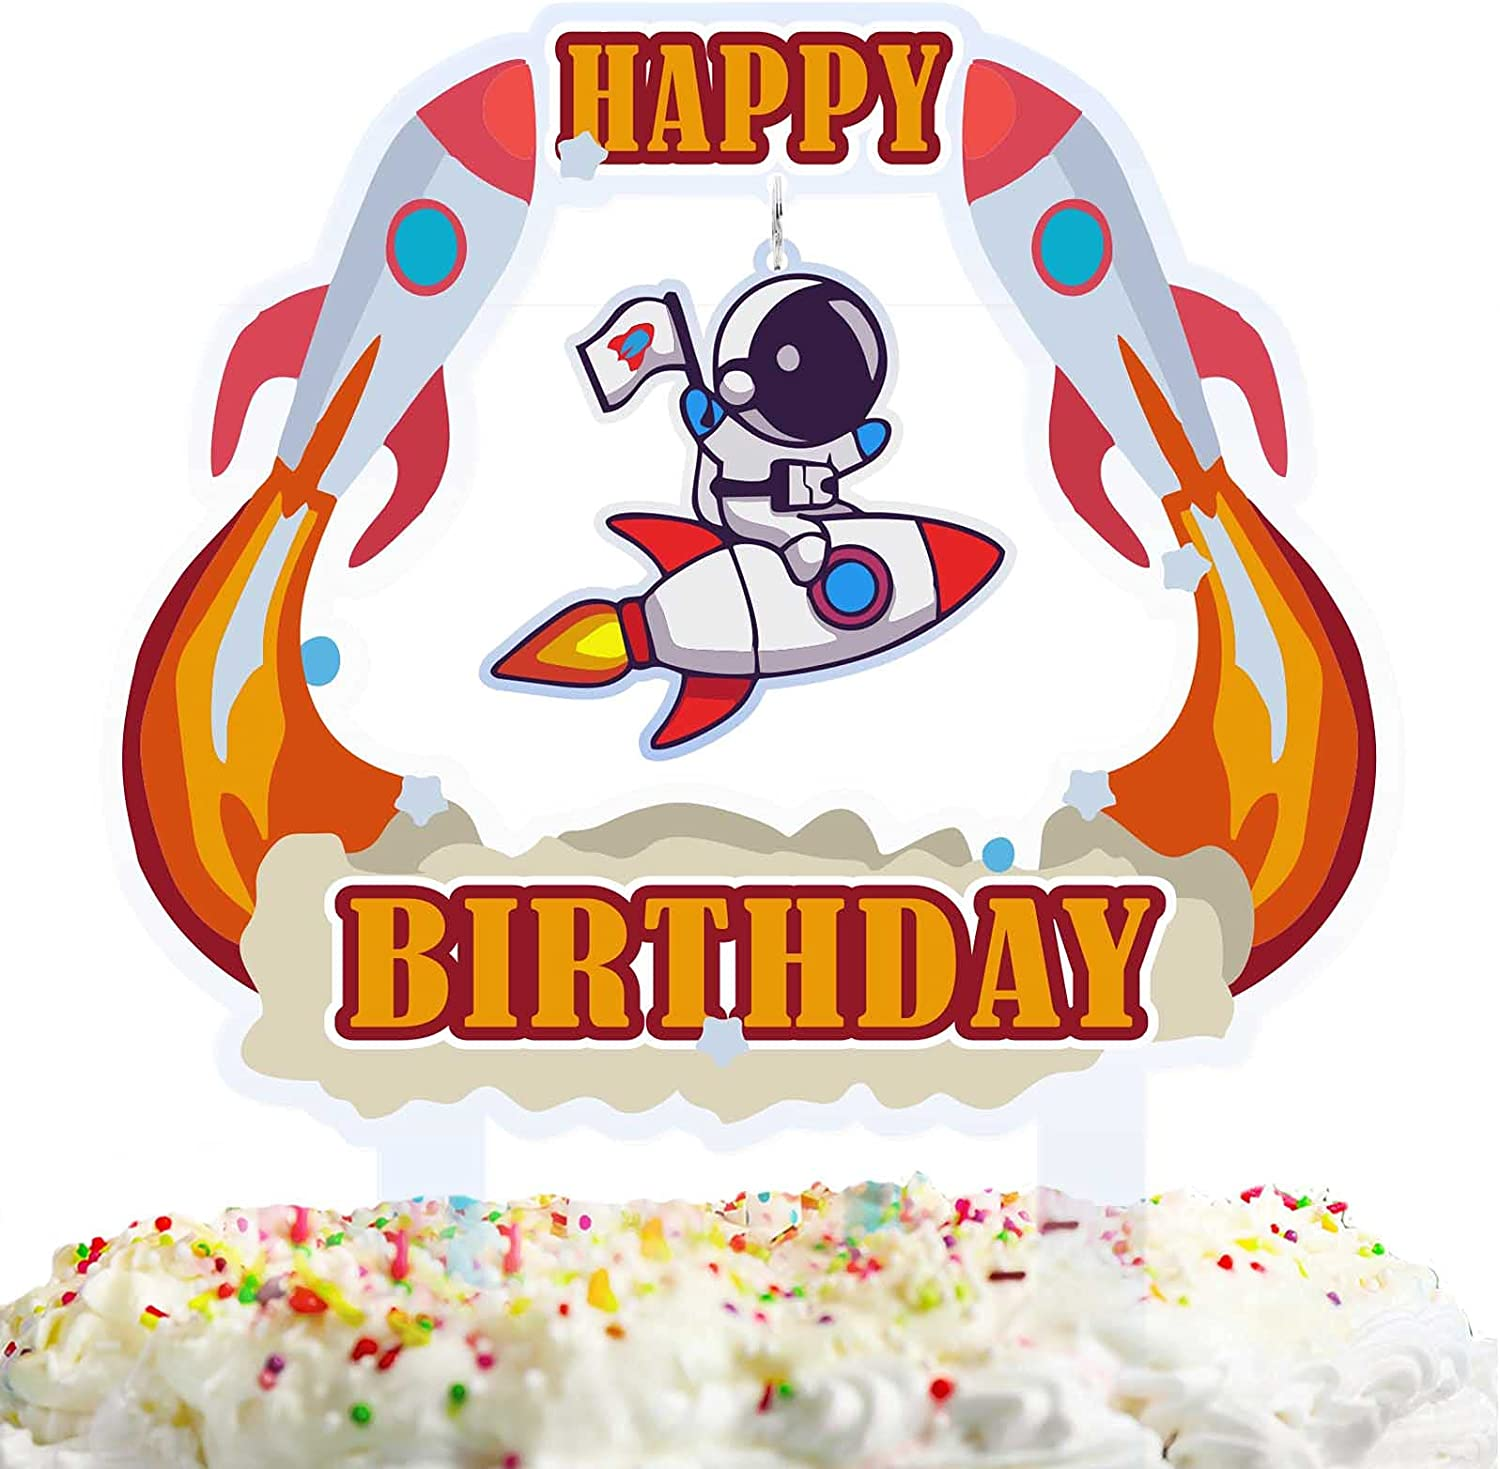 Astronaut Happy Birthday Acrylic Cake Topper Red Blast off Rocket Theme Decorations Shower Baby Birthday Party Decor Supplies